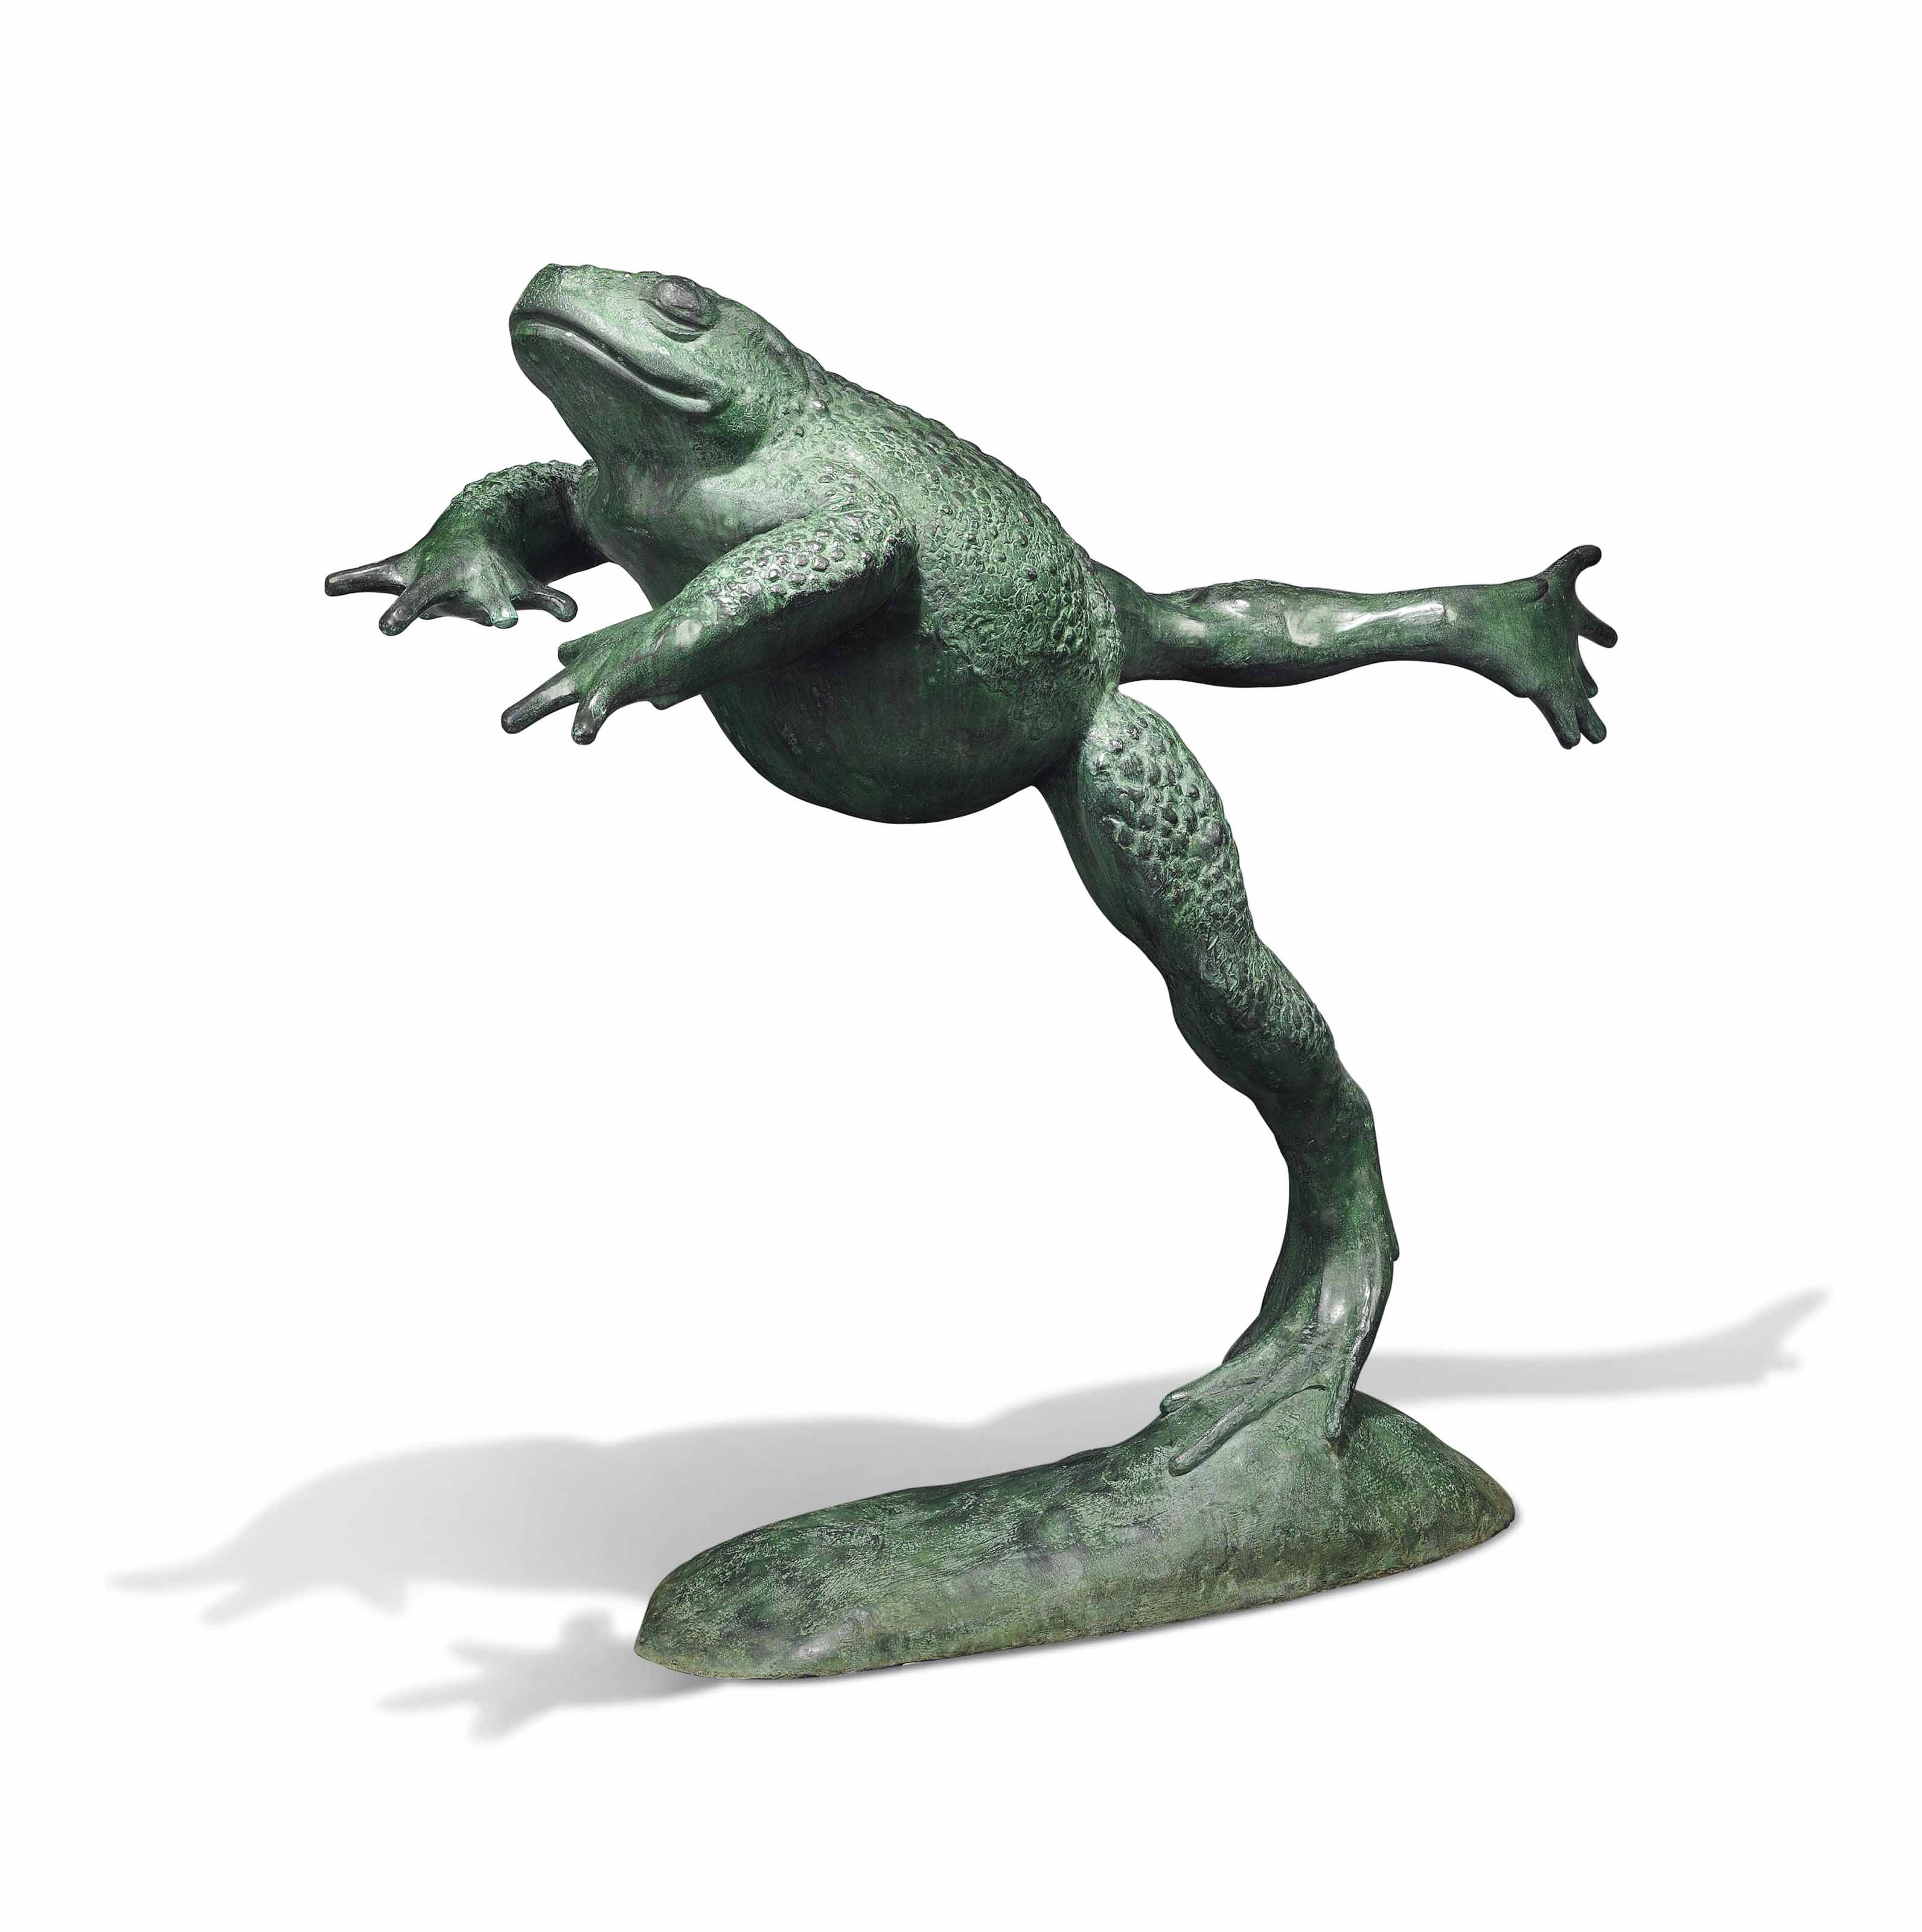 A LARGE BRONZE MODEL OF A TOAD